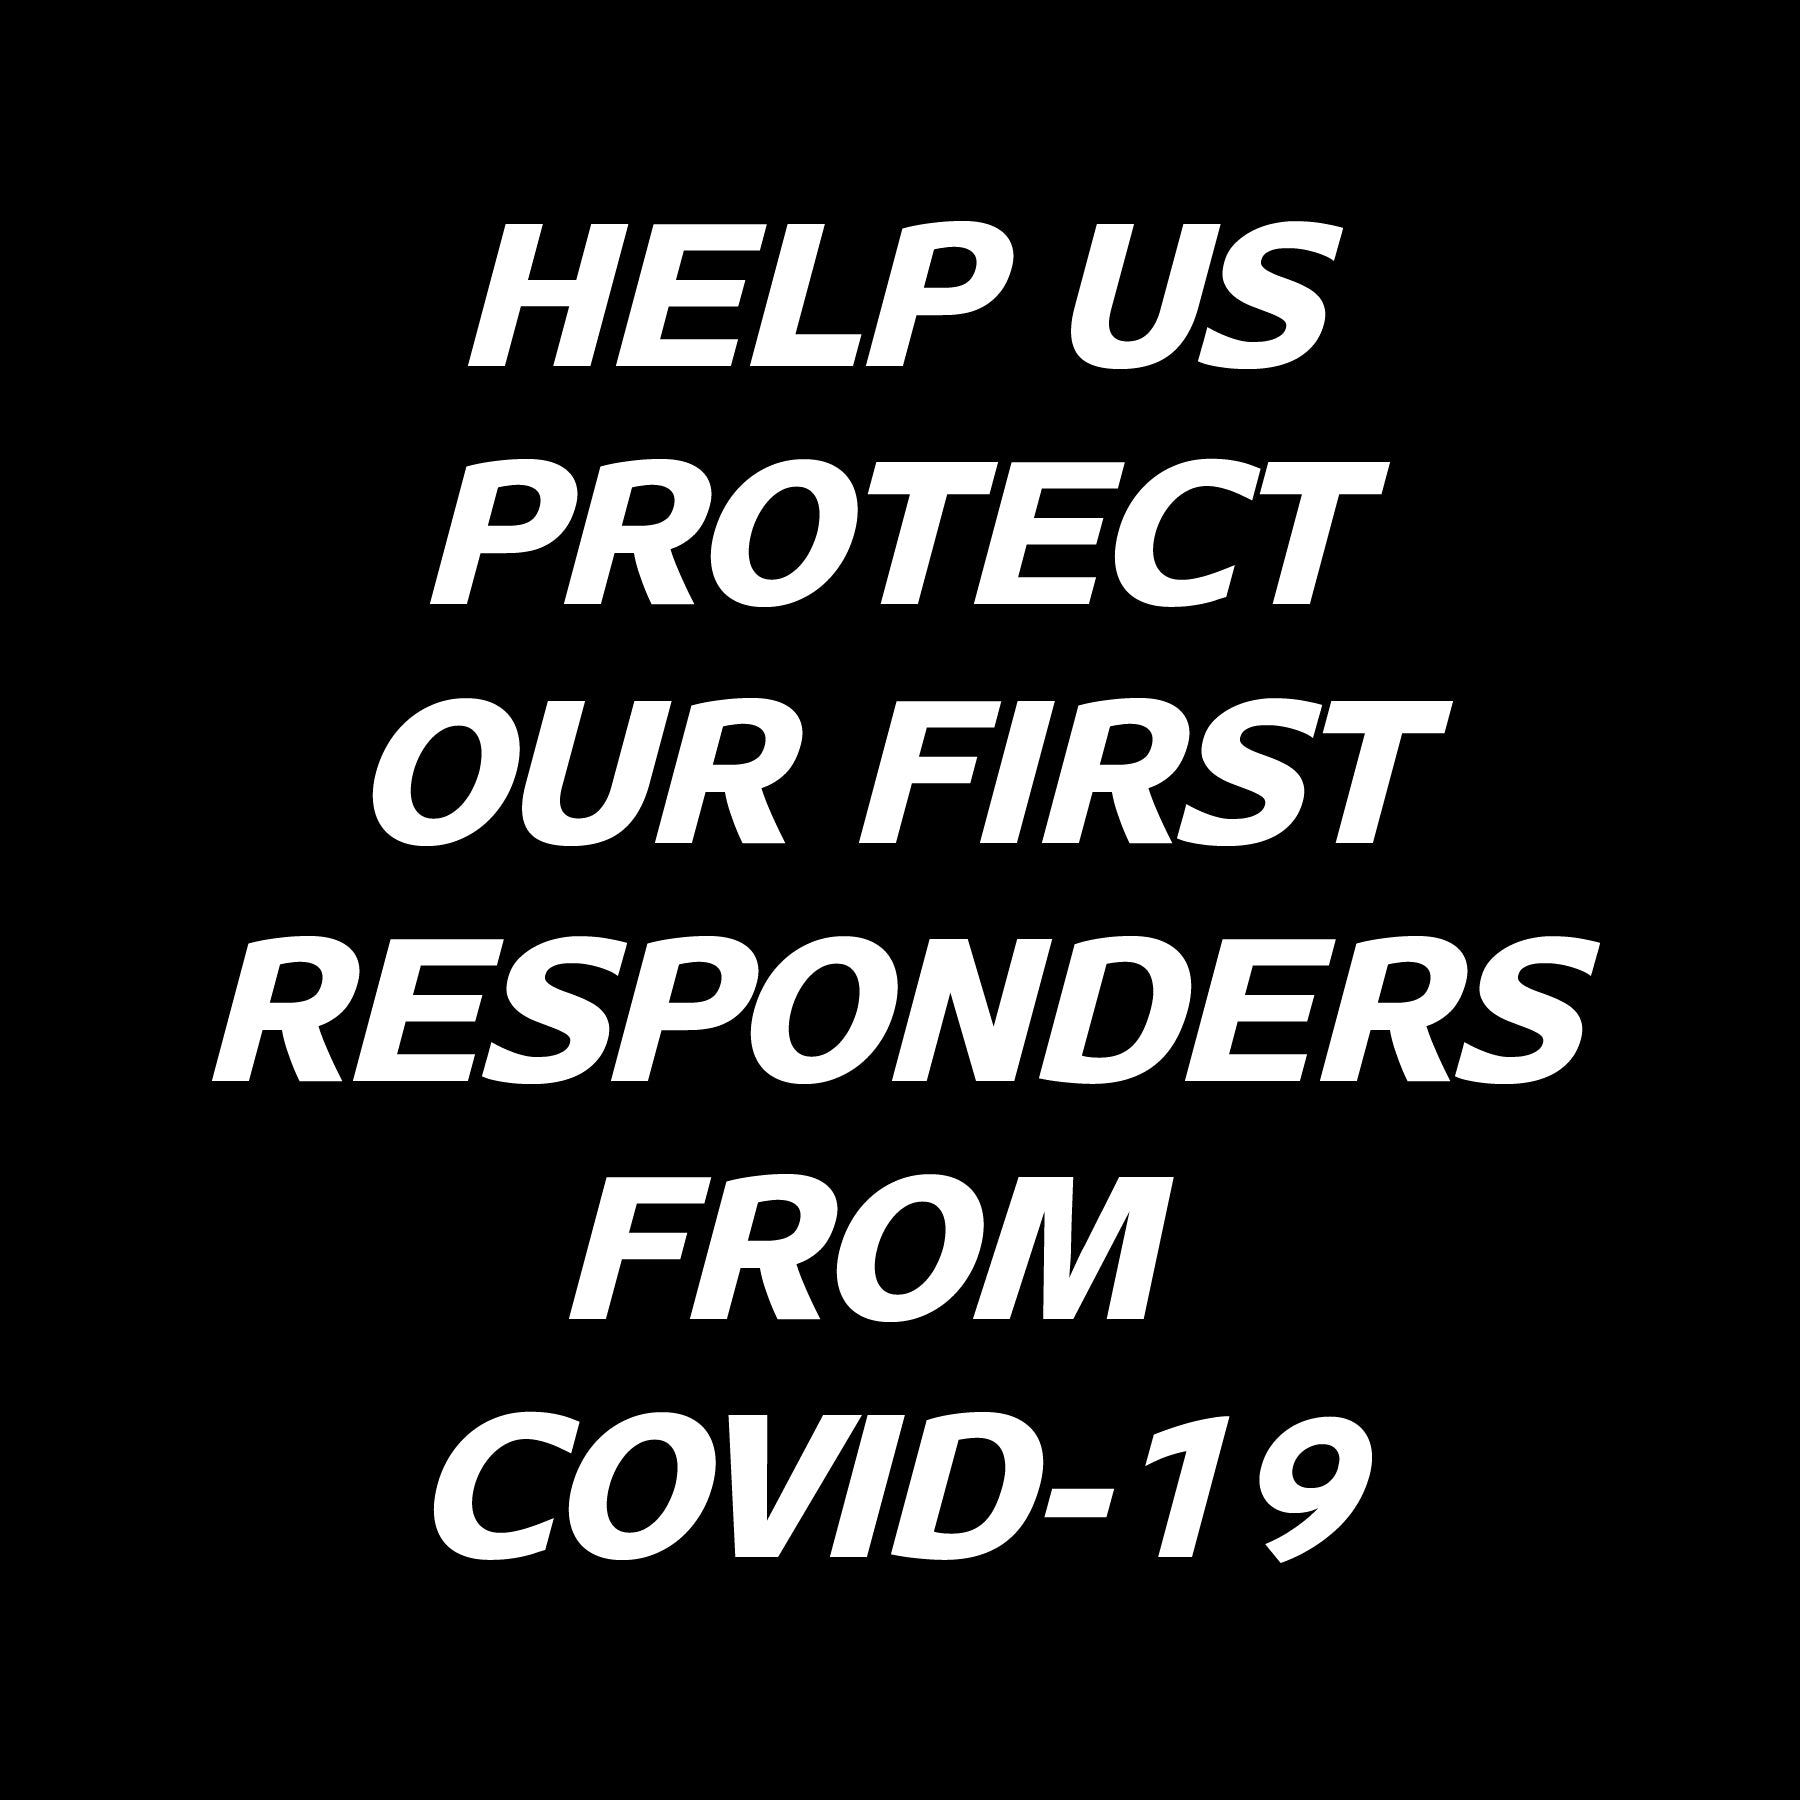 Altitude Hobbies proudly supports our first responders amidst Covid-19. See how you can help us help them